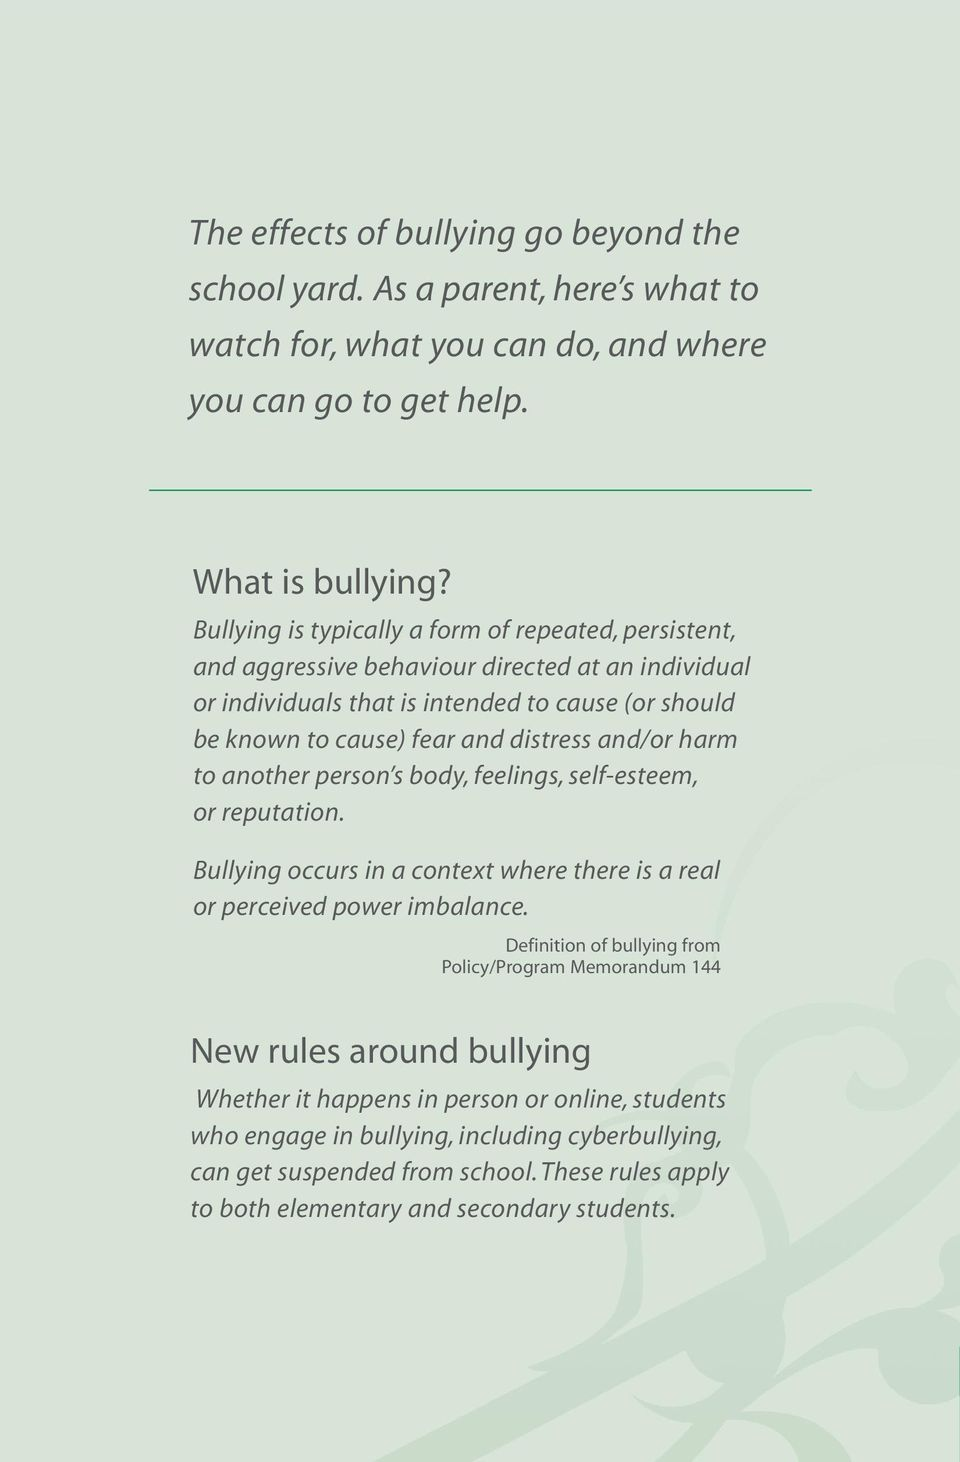 and/or harm to another person s body, feelings, self-esteem, or reputation. Bullying occurs in a context where there is a real or perceived power imbalance.